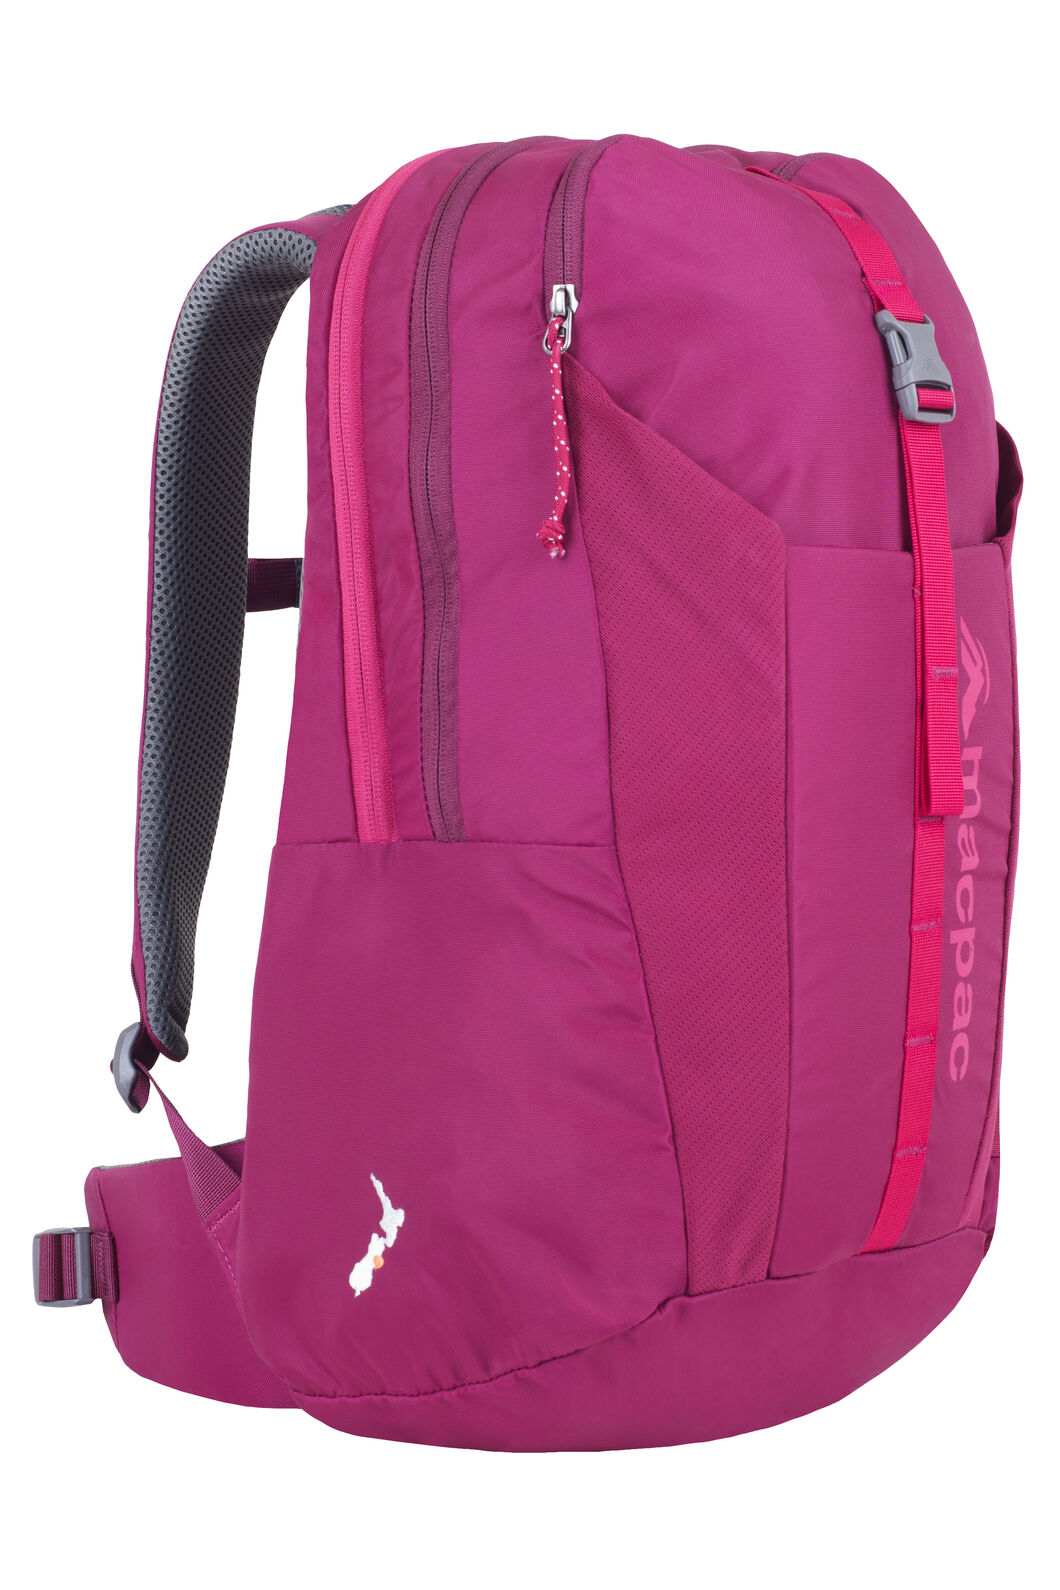 Macpac Summit Ridge 22L Daypack - Kids', Beet Red, hi-res